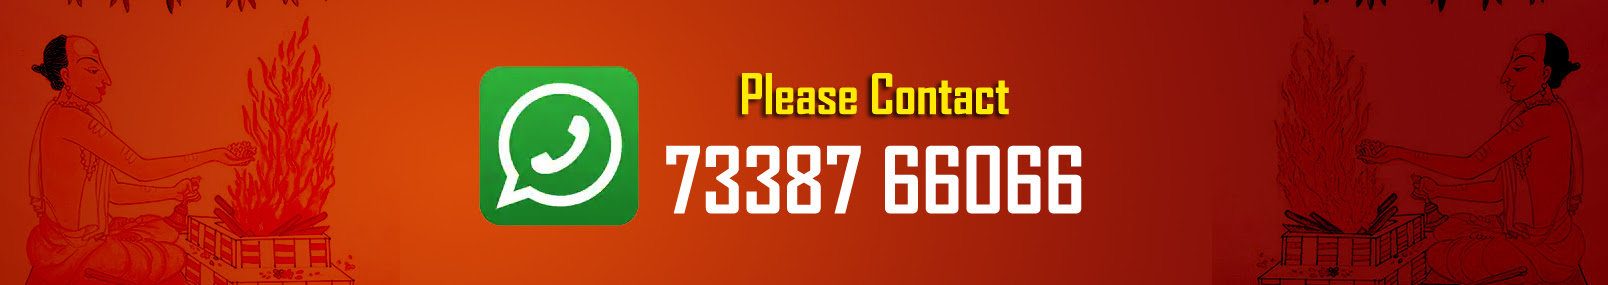 Vedicfolks Contact